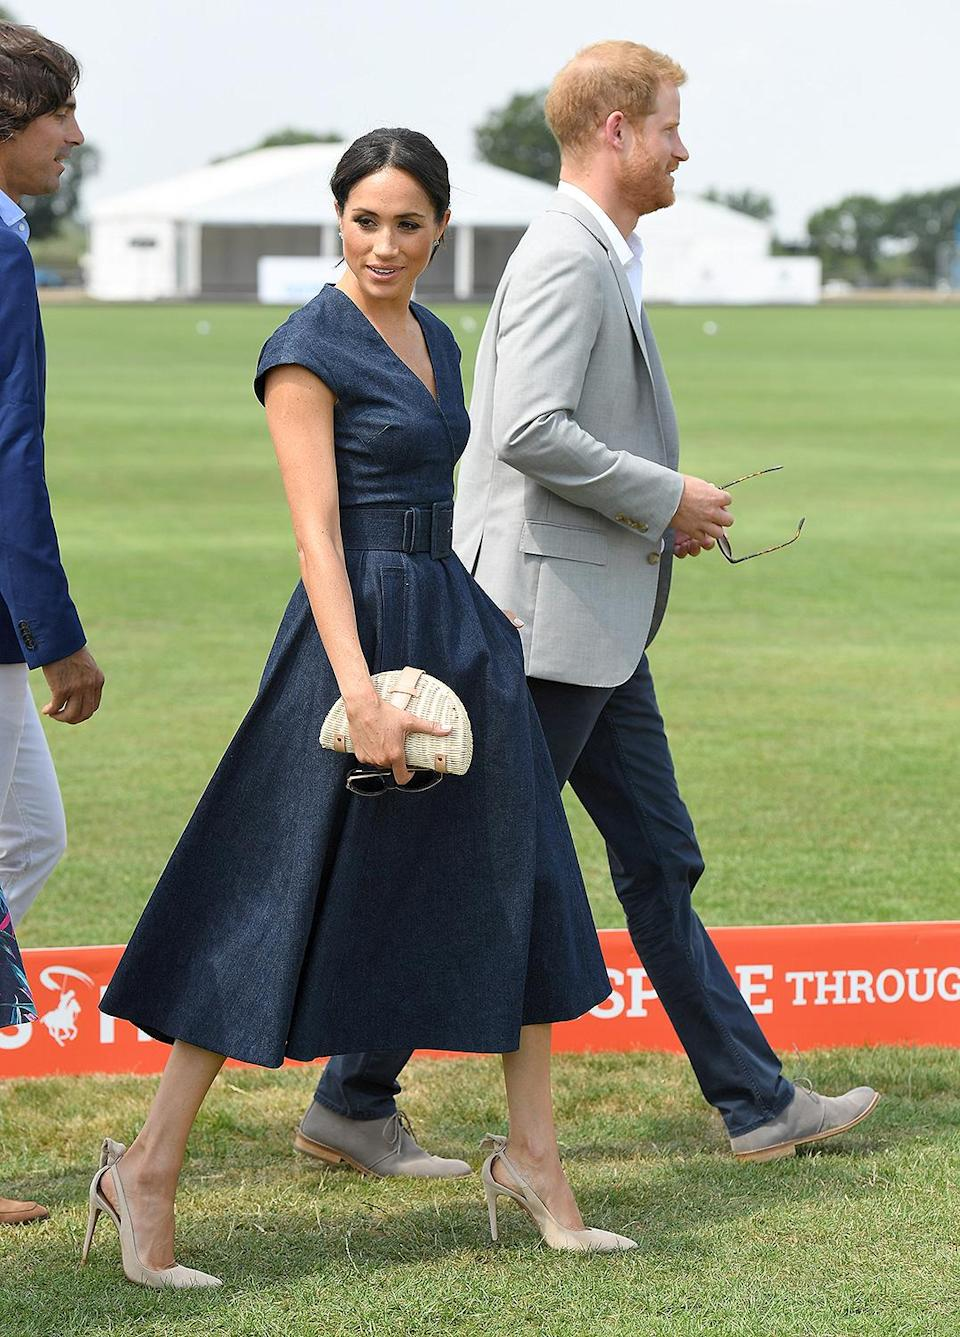 """<p>Although Meghan's exact rattan clutch from J. Crew has sold out since she brought it to Prince Harry's July 2018 polo match, it's a simply chic inspiration for your go-to summer bag.</p> <p><strong>Get the Look!<br></strong><strong>Tuckernuck Natural Kaine Clutch, <a href=""""https://www.tnuck.com/natural-kaine-clutch-0.html"""" rel=""""sponsored noopener"""" target=""""_blank"""" data-ylk=""""slk:$250"""" class=""""link rapid-noclick-resp"""">$250</a><br>J. Crew Rattan Clutch, <a href=""""https://www.anrdoezrs.net/links/8029122/type/dlg/sid/PEO11RoyalsInspiredGiftsYouNeedThisSummerpetitsRoyGal12744024202106I/https://www.jcrew.com/us/p/womens_category/handbags/clutchesandpouches/rattan-clutch-with-chain-strap/AN913"""" rel=""""sponsored noopener"""" target=""""_blank"""" data-ylk=""""slk:$99"""" class=""""link rapid-noclick-resp"""">$99</a></strong><b><br></b><strong>Lulu's Woven Half Moon Clutch, <a href=""""https://www.pntra.com/t/8-11575-131940-157915?sid=PEO11RoyalsInspiredGiftsYouNeedThisSummerpetitsRoyGal12744024202106I&url=https%3A%2F%2Fwww.lulus.com%2Fproducts%2Fjust-wanna-have-sun-yellow-woven-half-moon-clutch%2F1390596.html"""" rel=""""sponsored noopener"""" target=""""_blank"""" data-ylk=""""slk:$34"""" class=""""link rapid-noclick-resp"""">$34</a></strong></p>"""